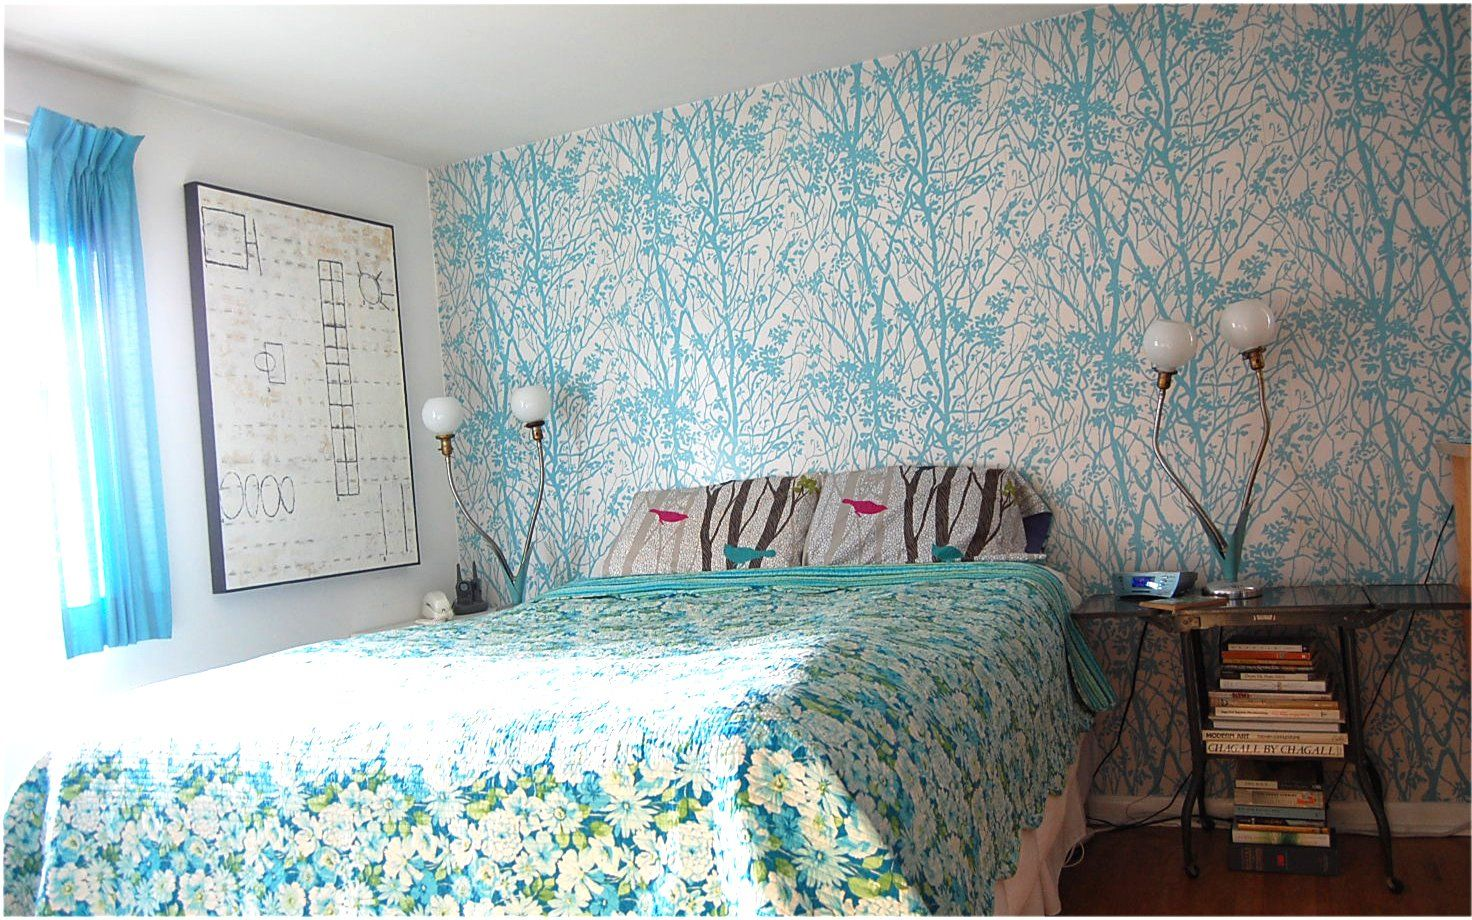 Our Bedroom before we took the wall paper down. And, yes, I do miss it.